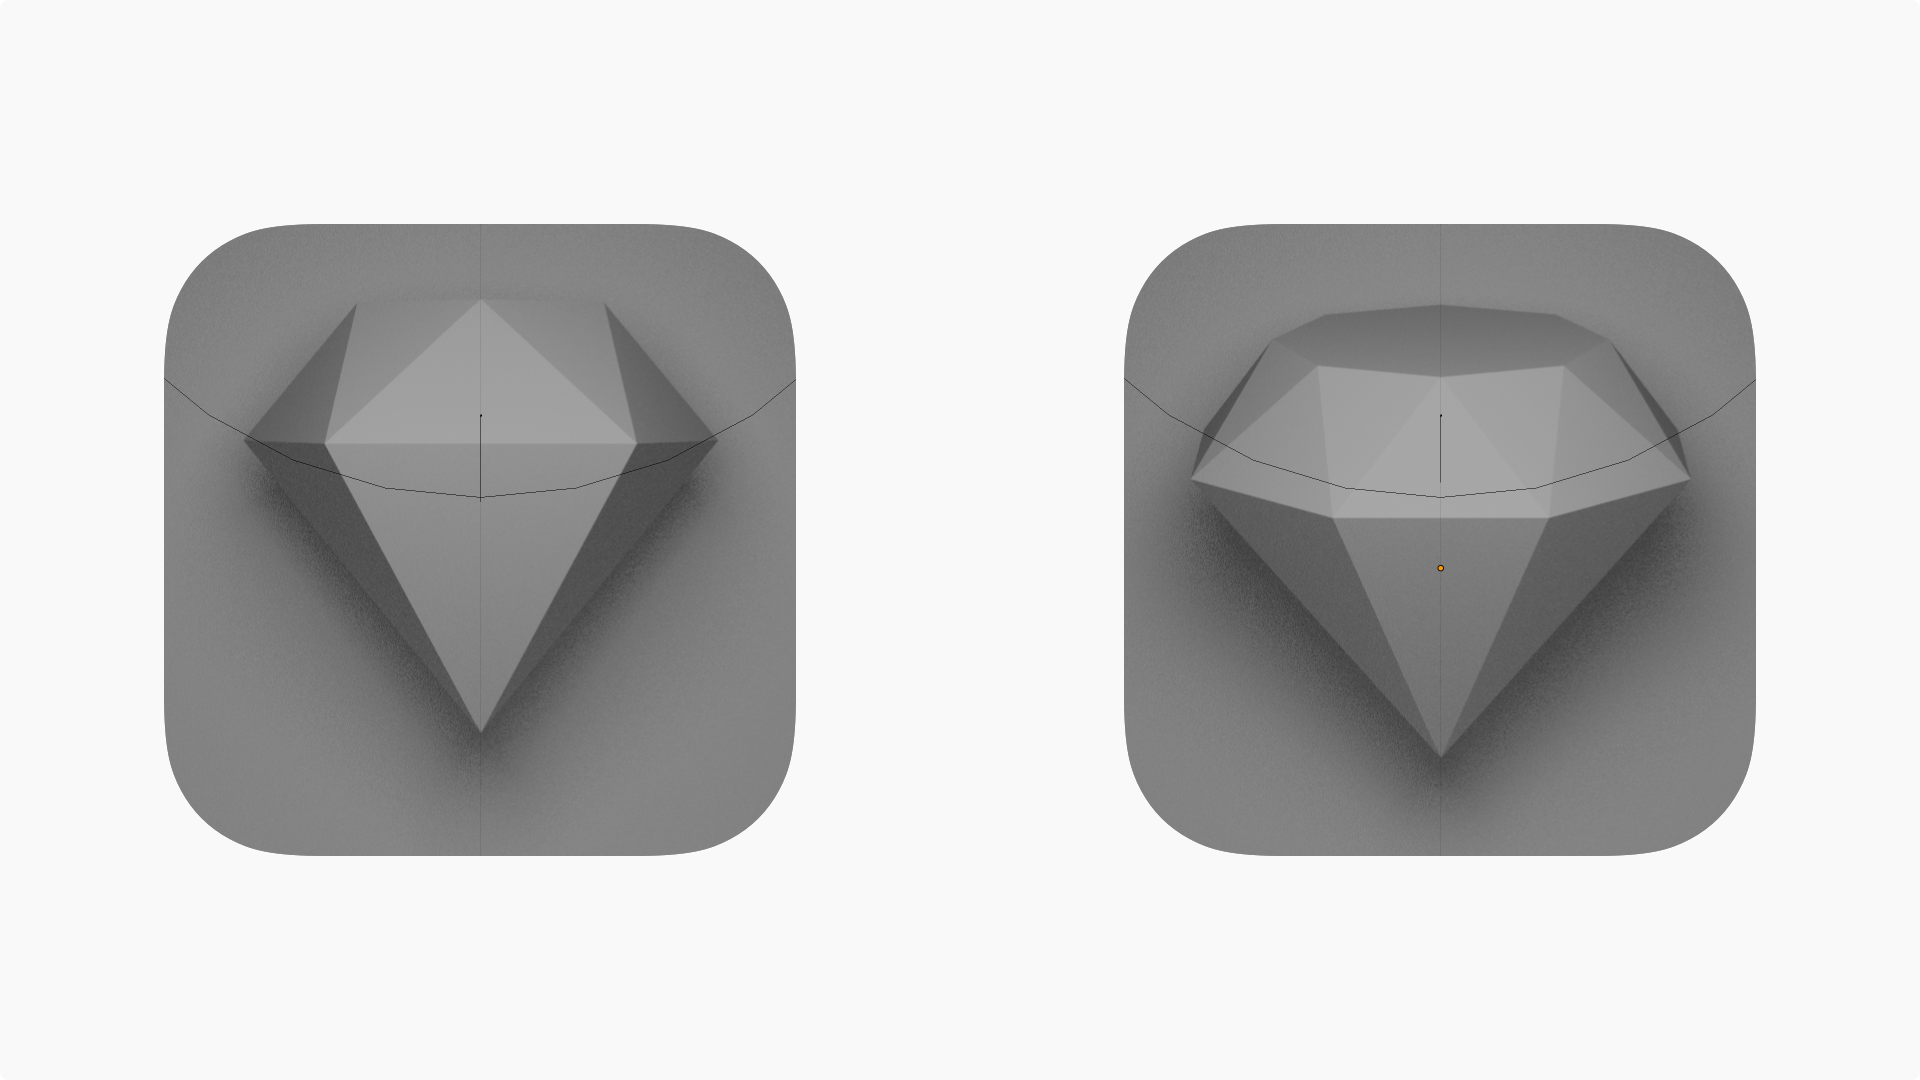 A 3D render of the two diamond shapes that Prekesh worked with during development.